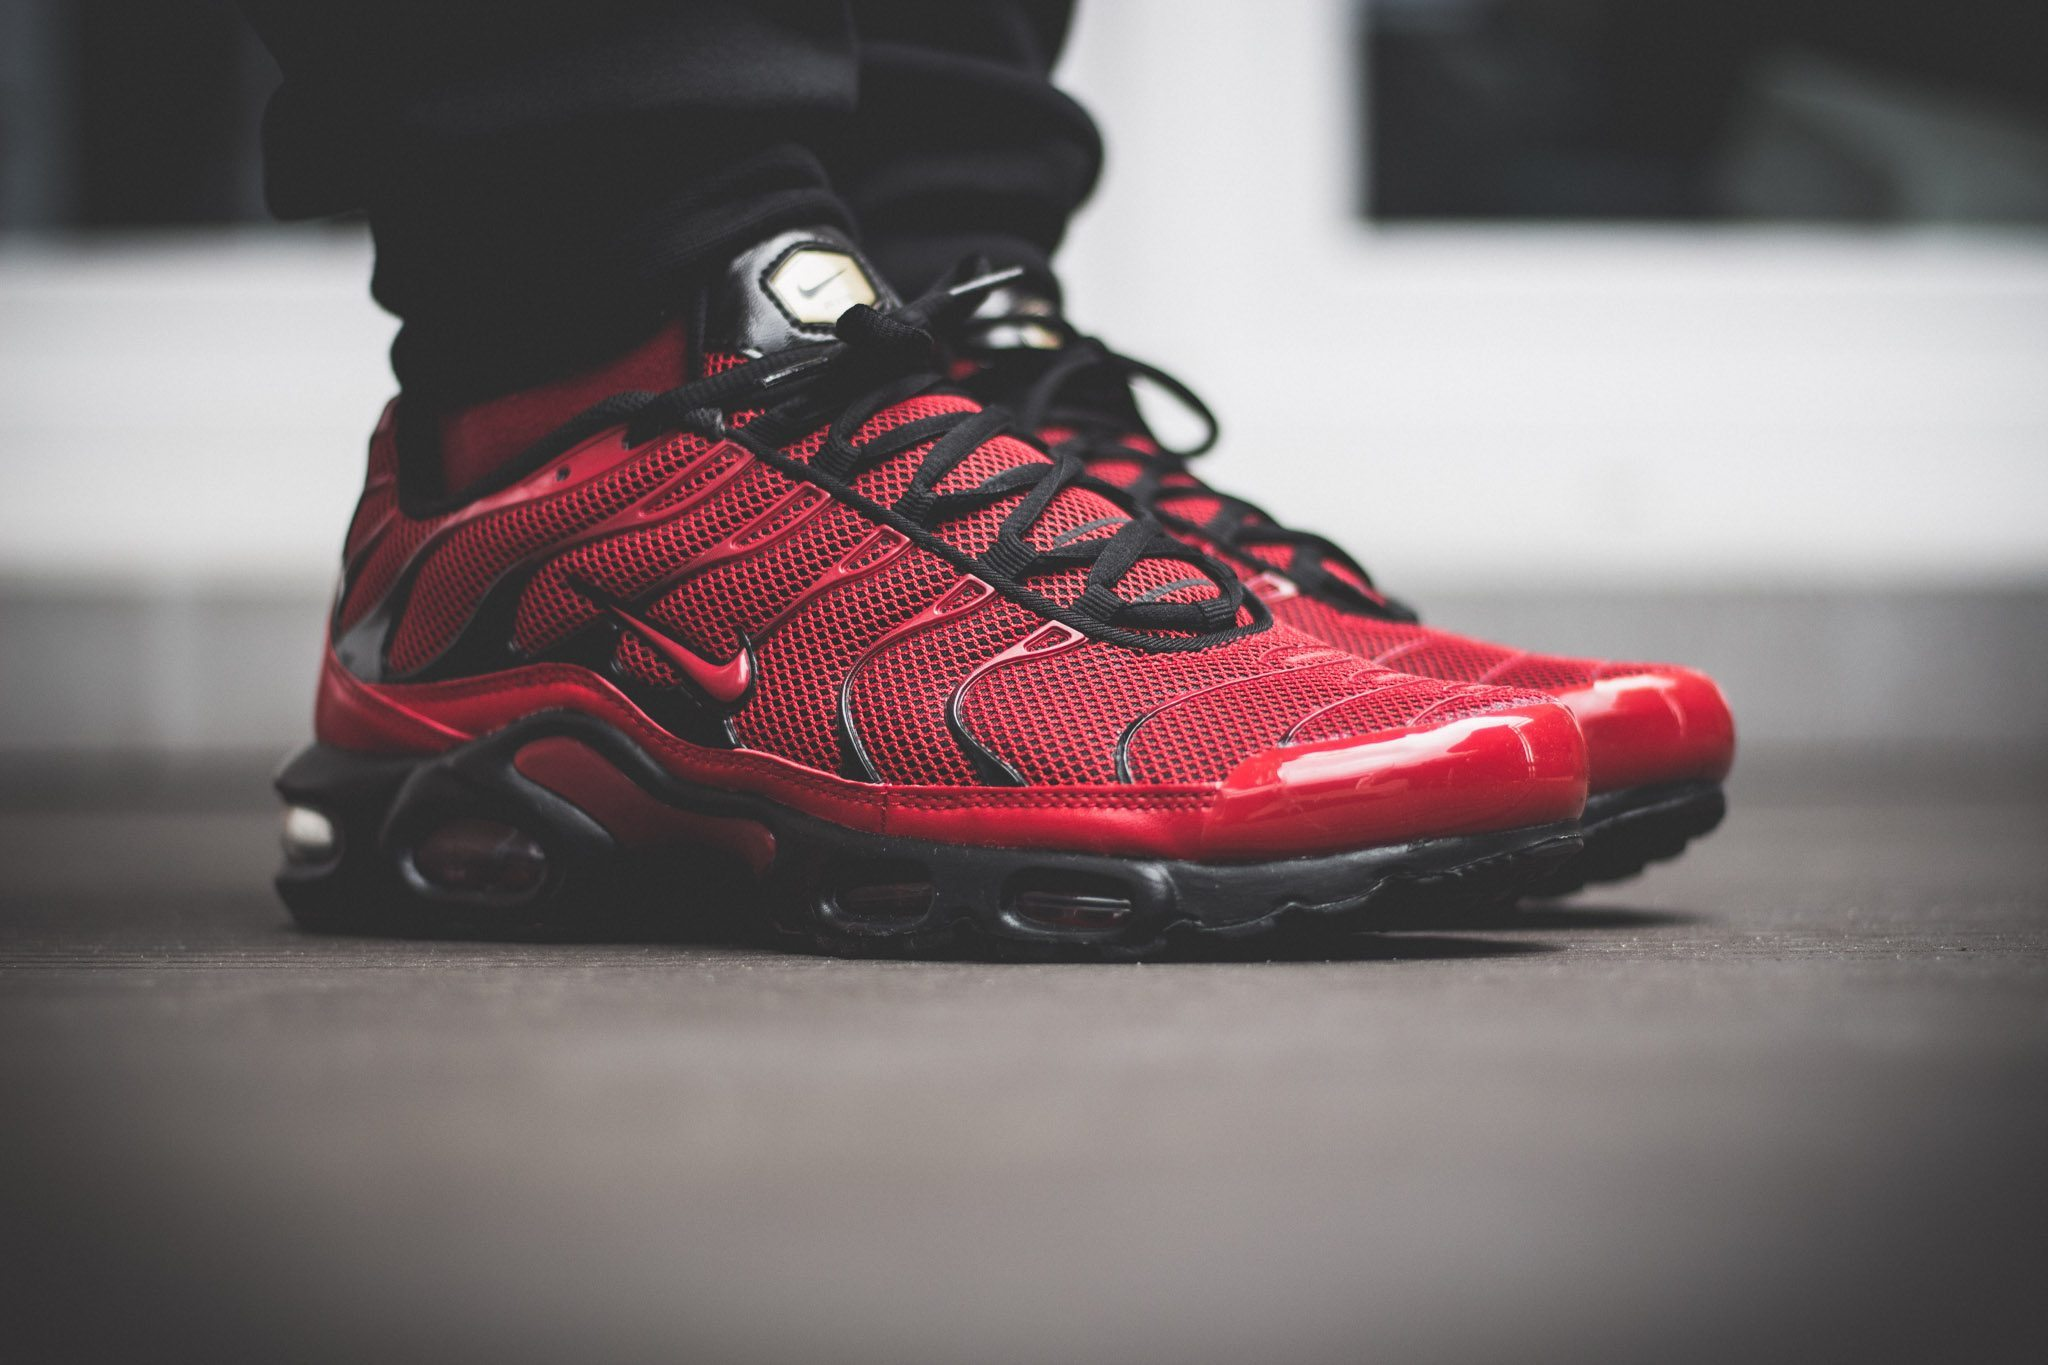 Nike Tuned 1 Red On Feet 2